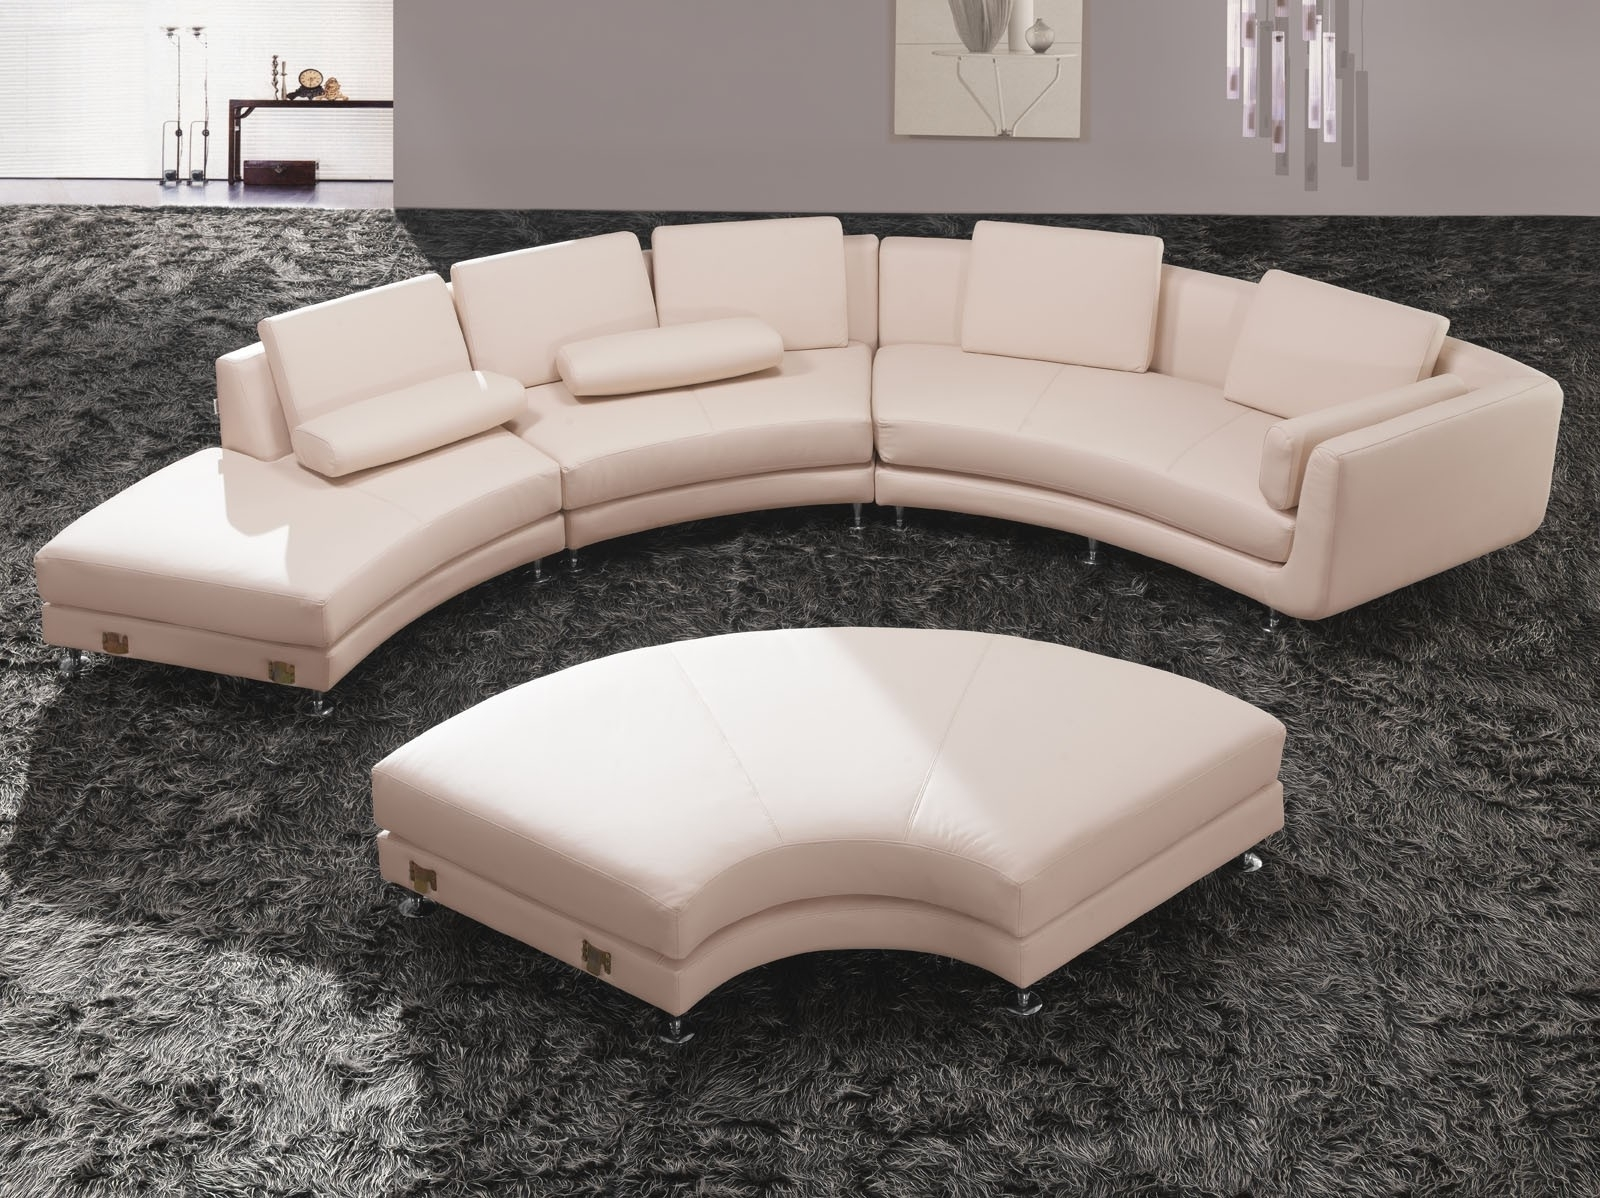 Sofa : Glamorous Round Sectional Sofa Bed Curved Leather Tufted Intended For Newest Round Sofas (View 14 of 15)